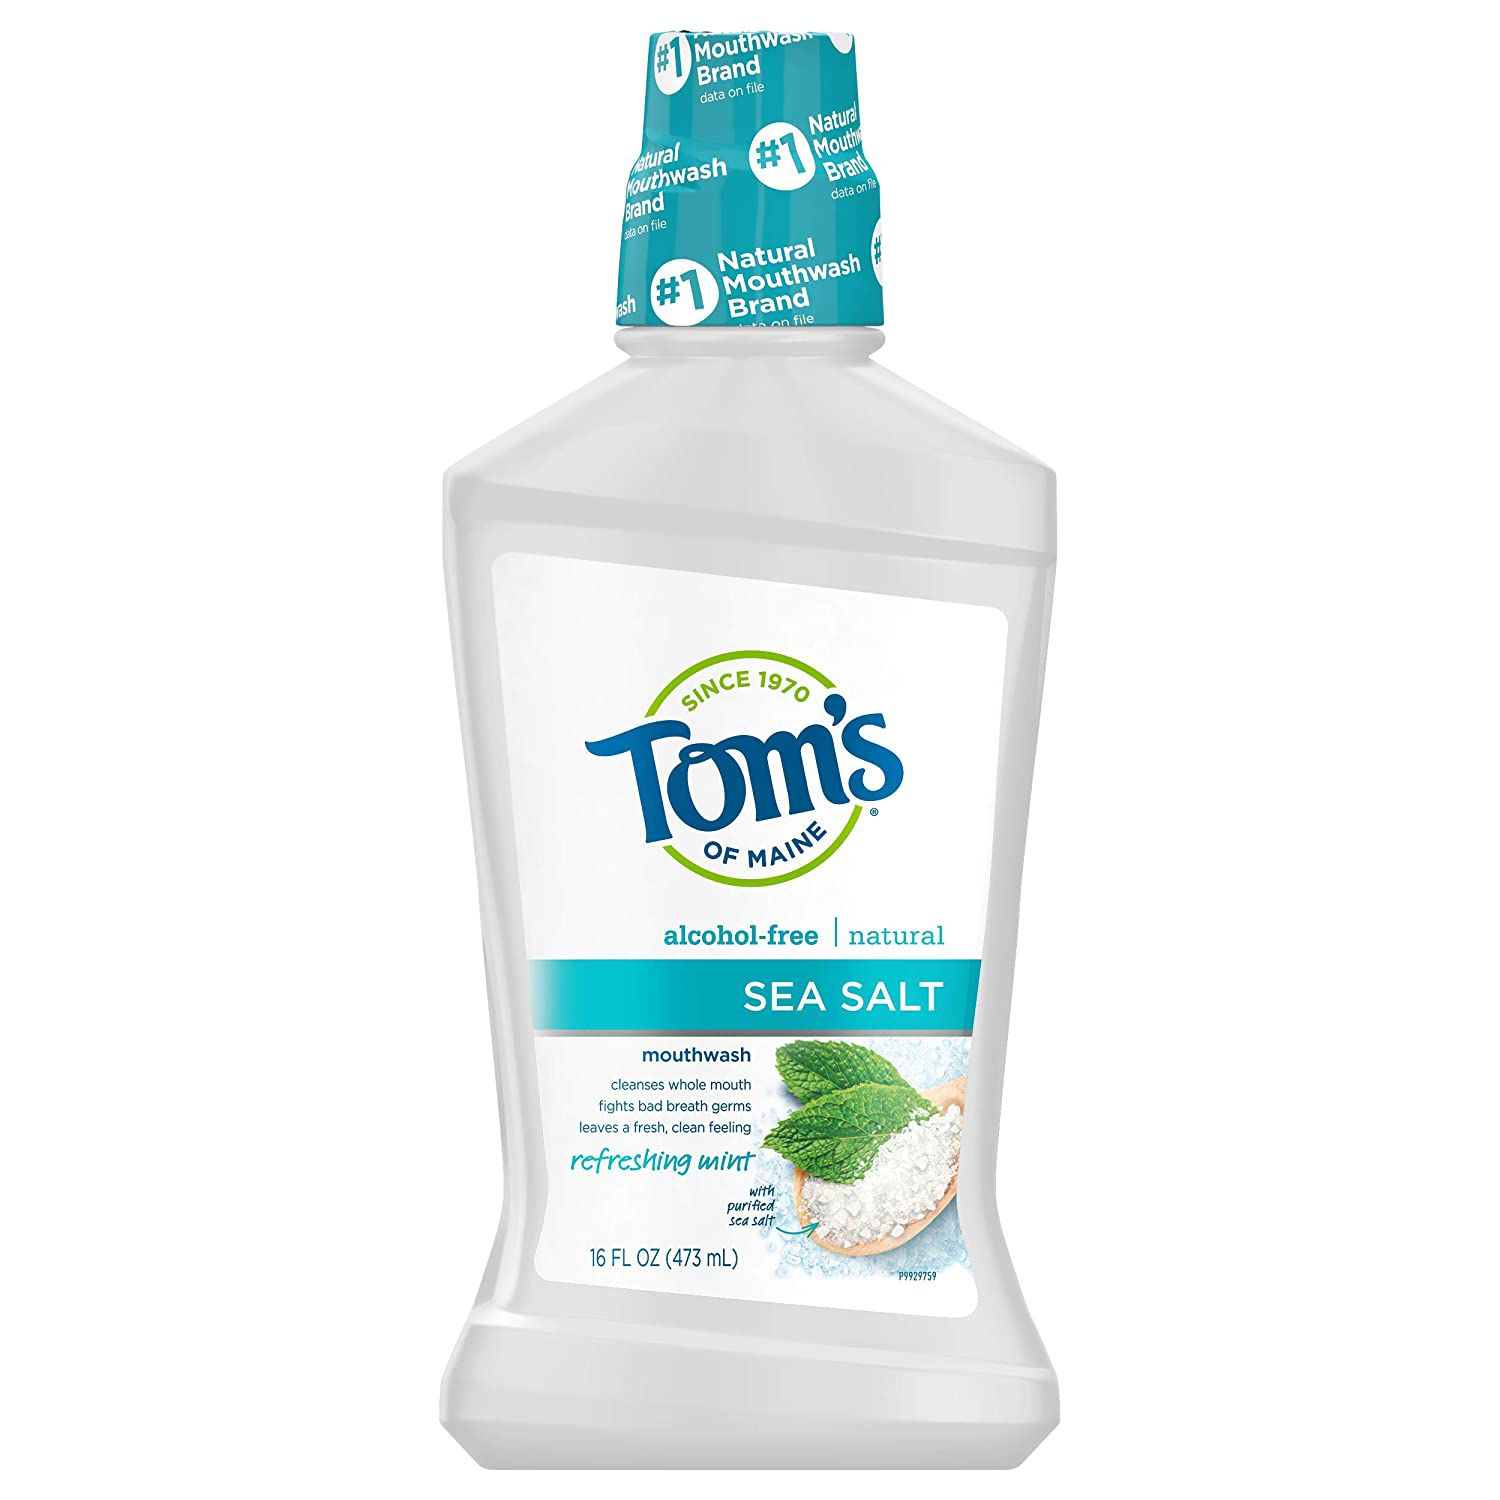 Tom's of Maine Natural Mouthwash 6-Pack